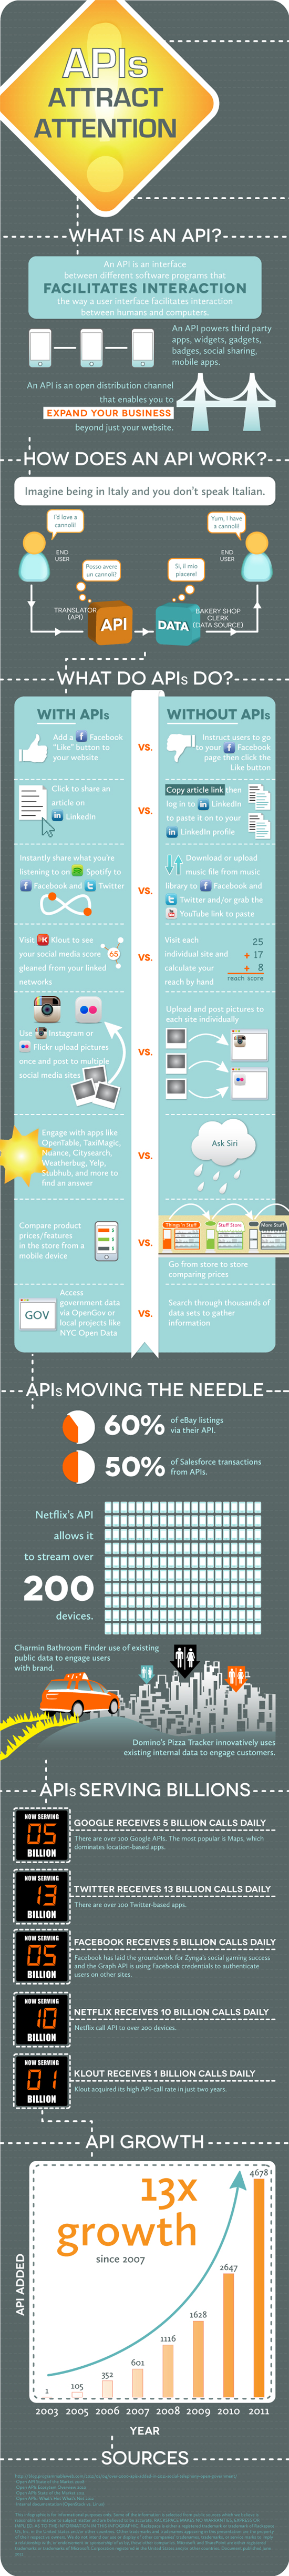 API Adoption And The Open Cloud: What Is An API? [Infographic]